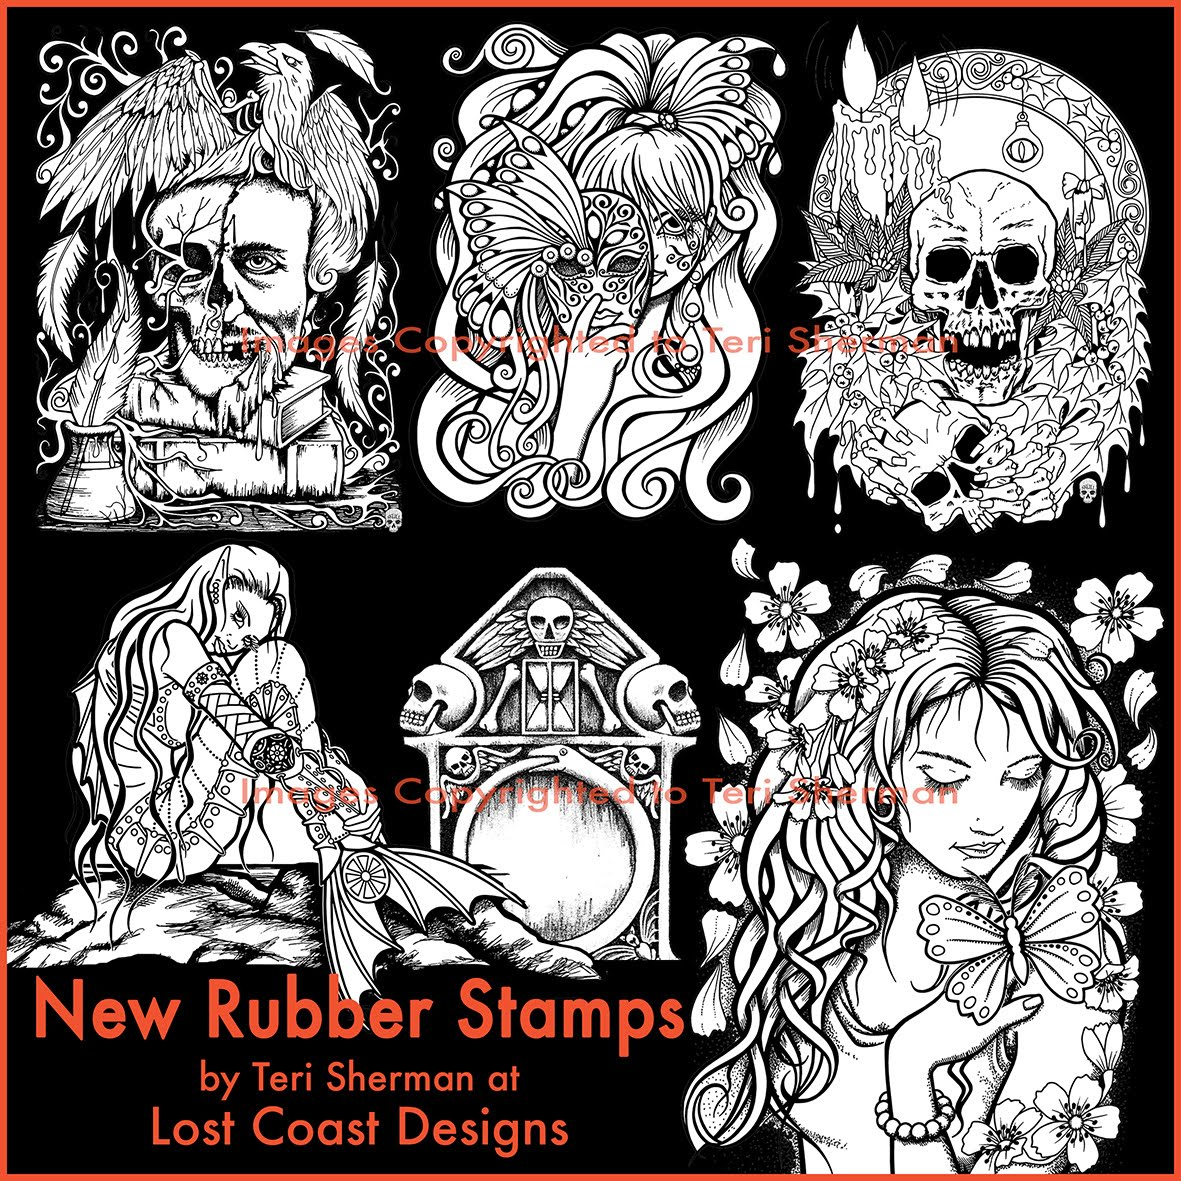 Rubber Stamps Available at Lost Coast Designs